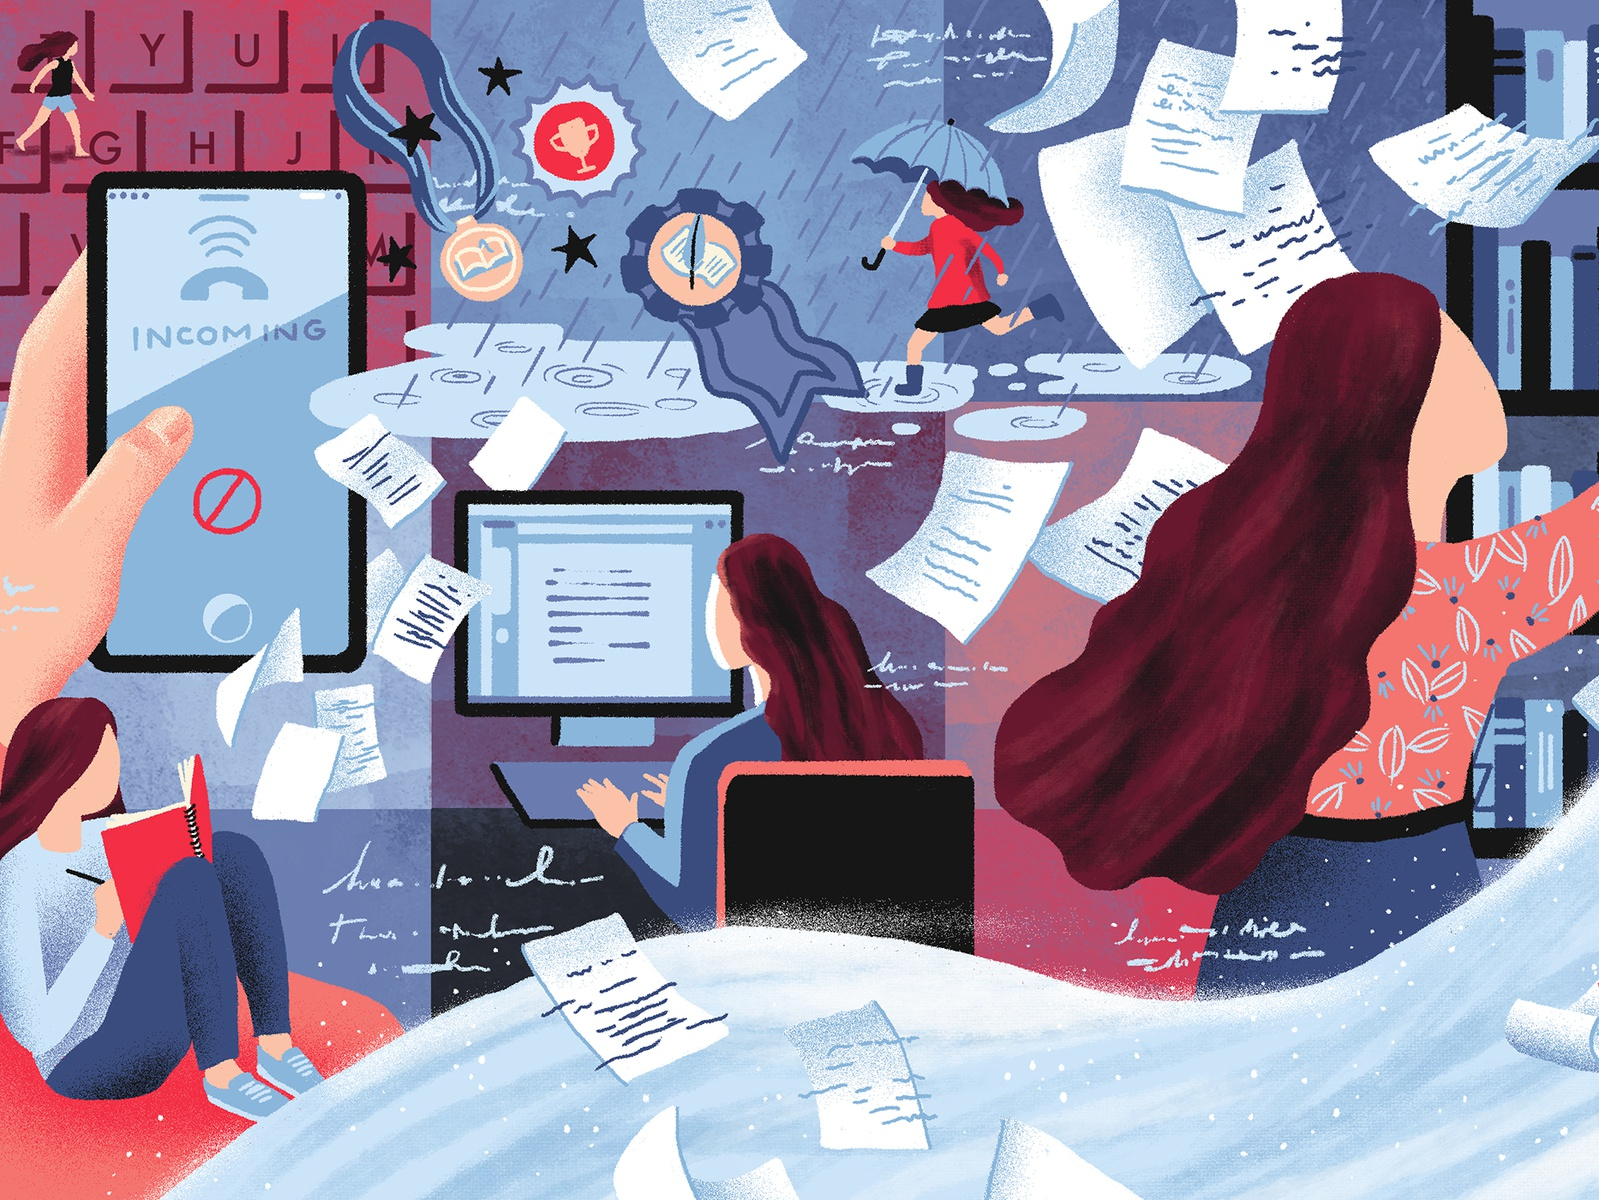 Advice For Writers books paper girls girl writing technology collage editorial illustration editorial art editorial illustration art illustration